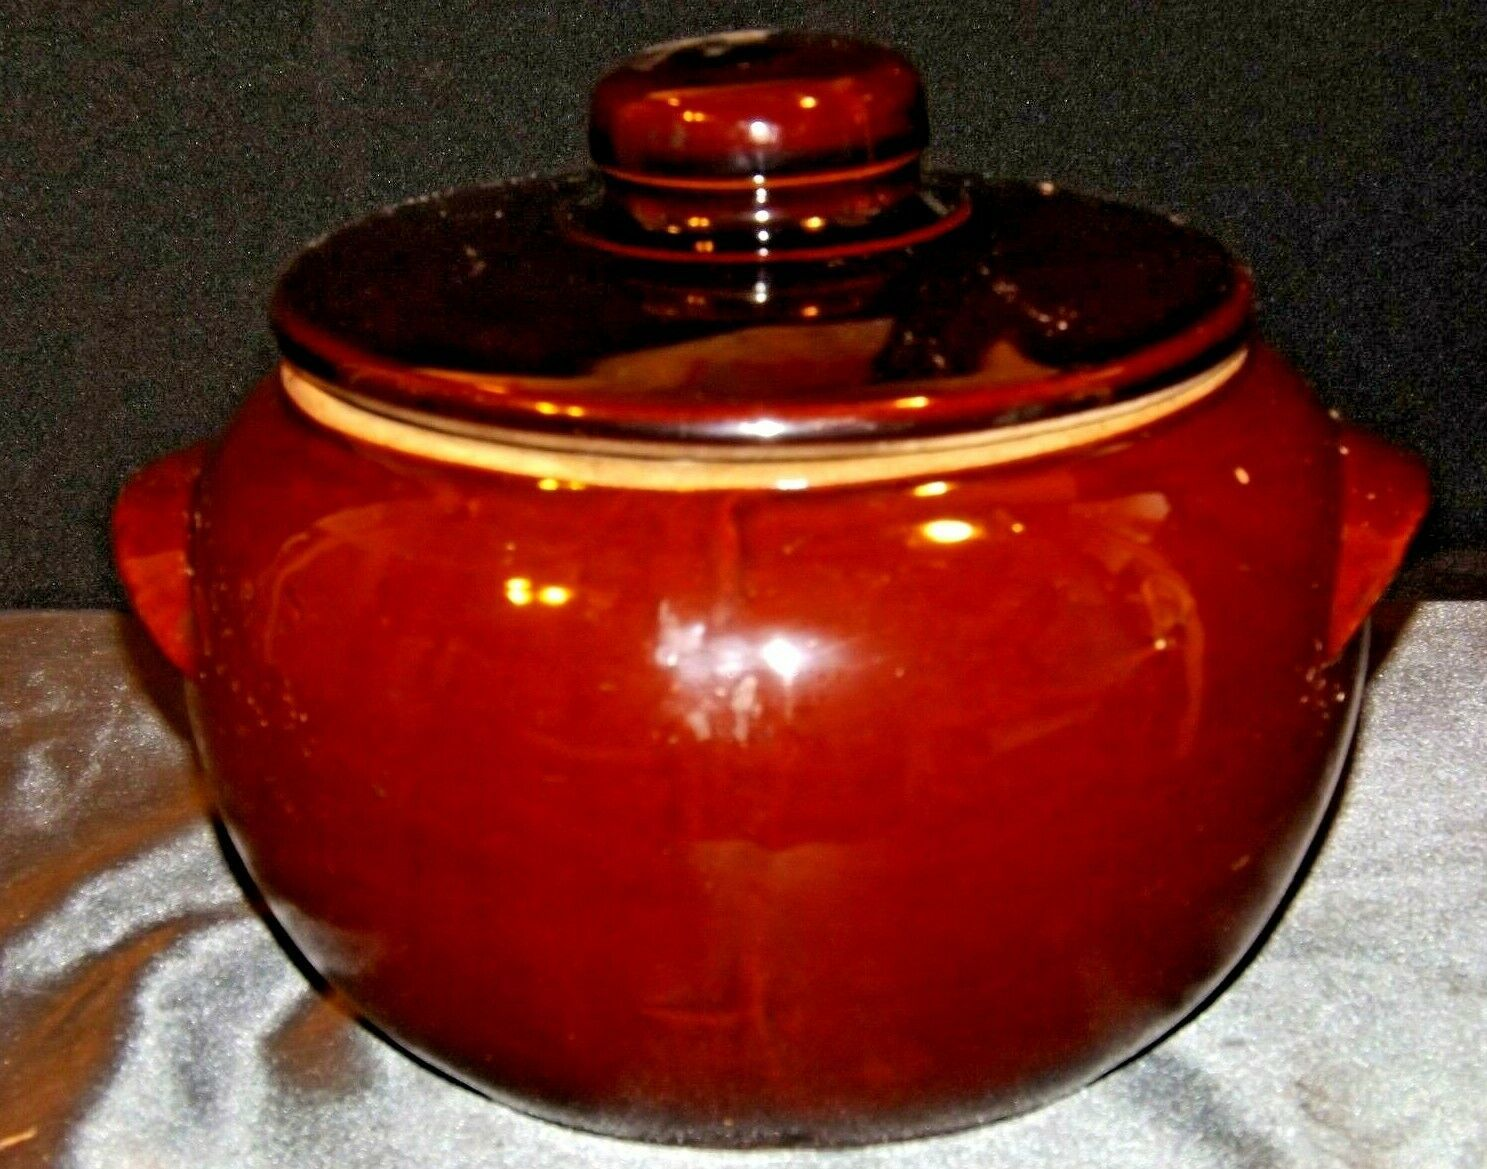 Glazed Ceramic Brown Bean Cook Pot with Lid AA19-1624 Vintage USA